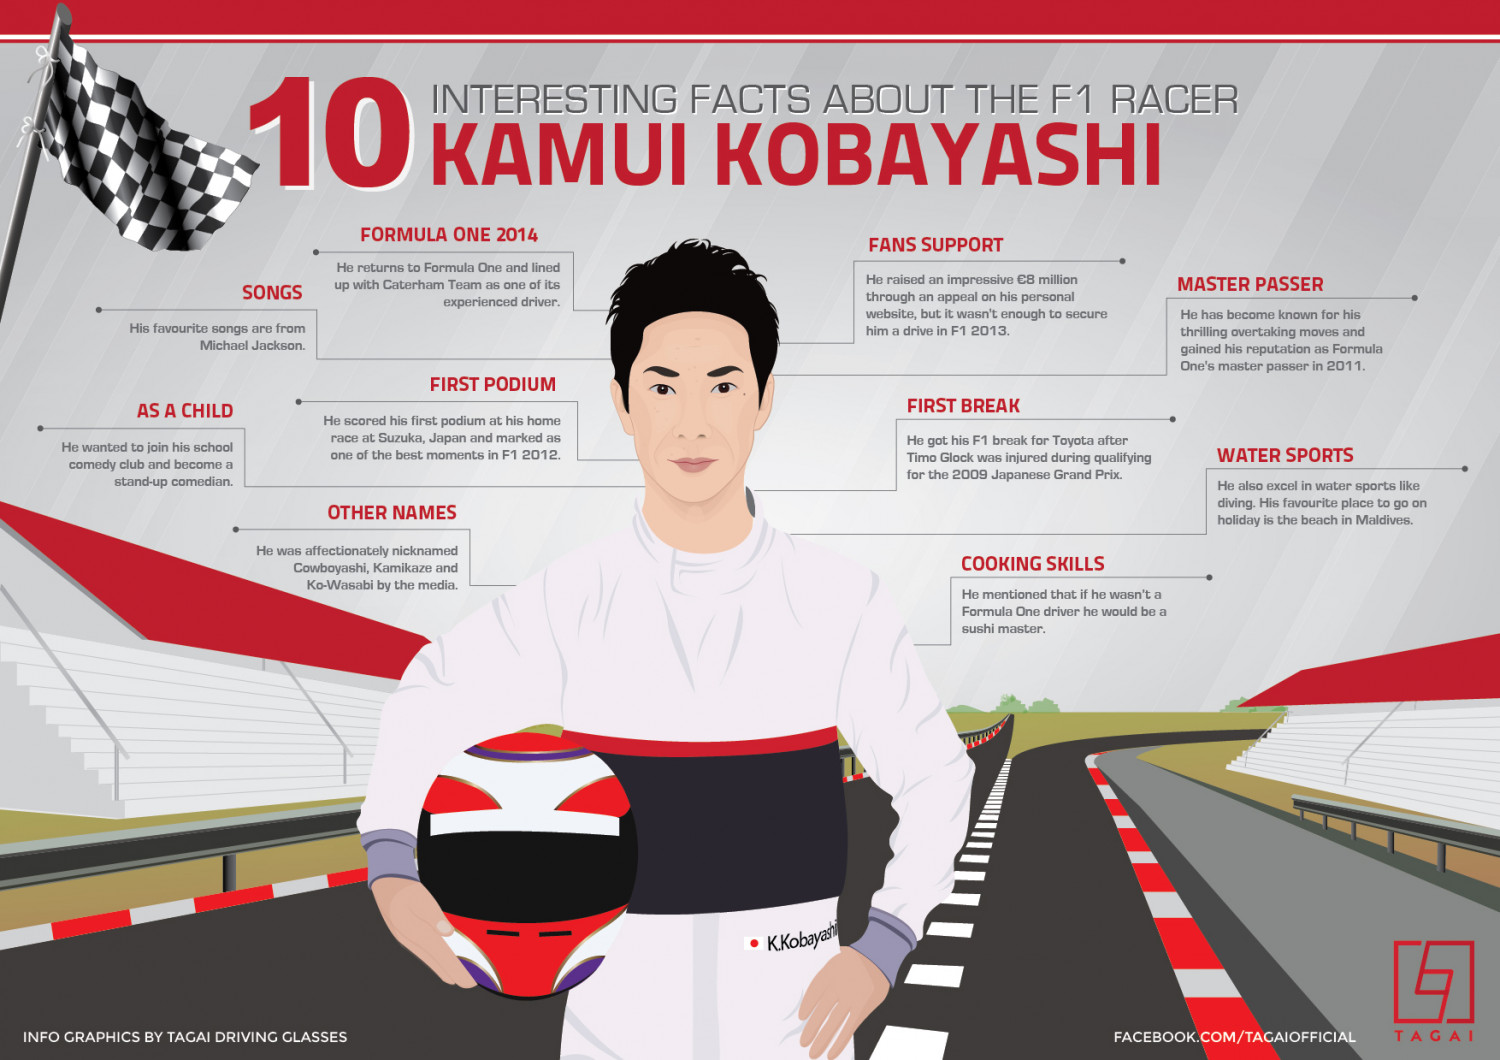 10 Interesting Facts about the Formula One Driver Kamui Kobayashi Infographic